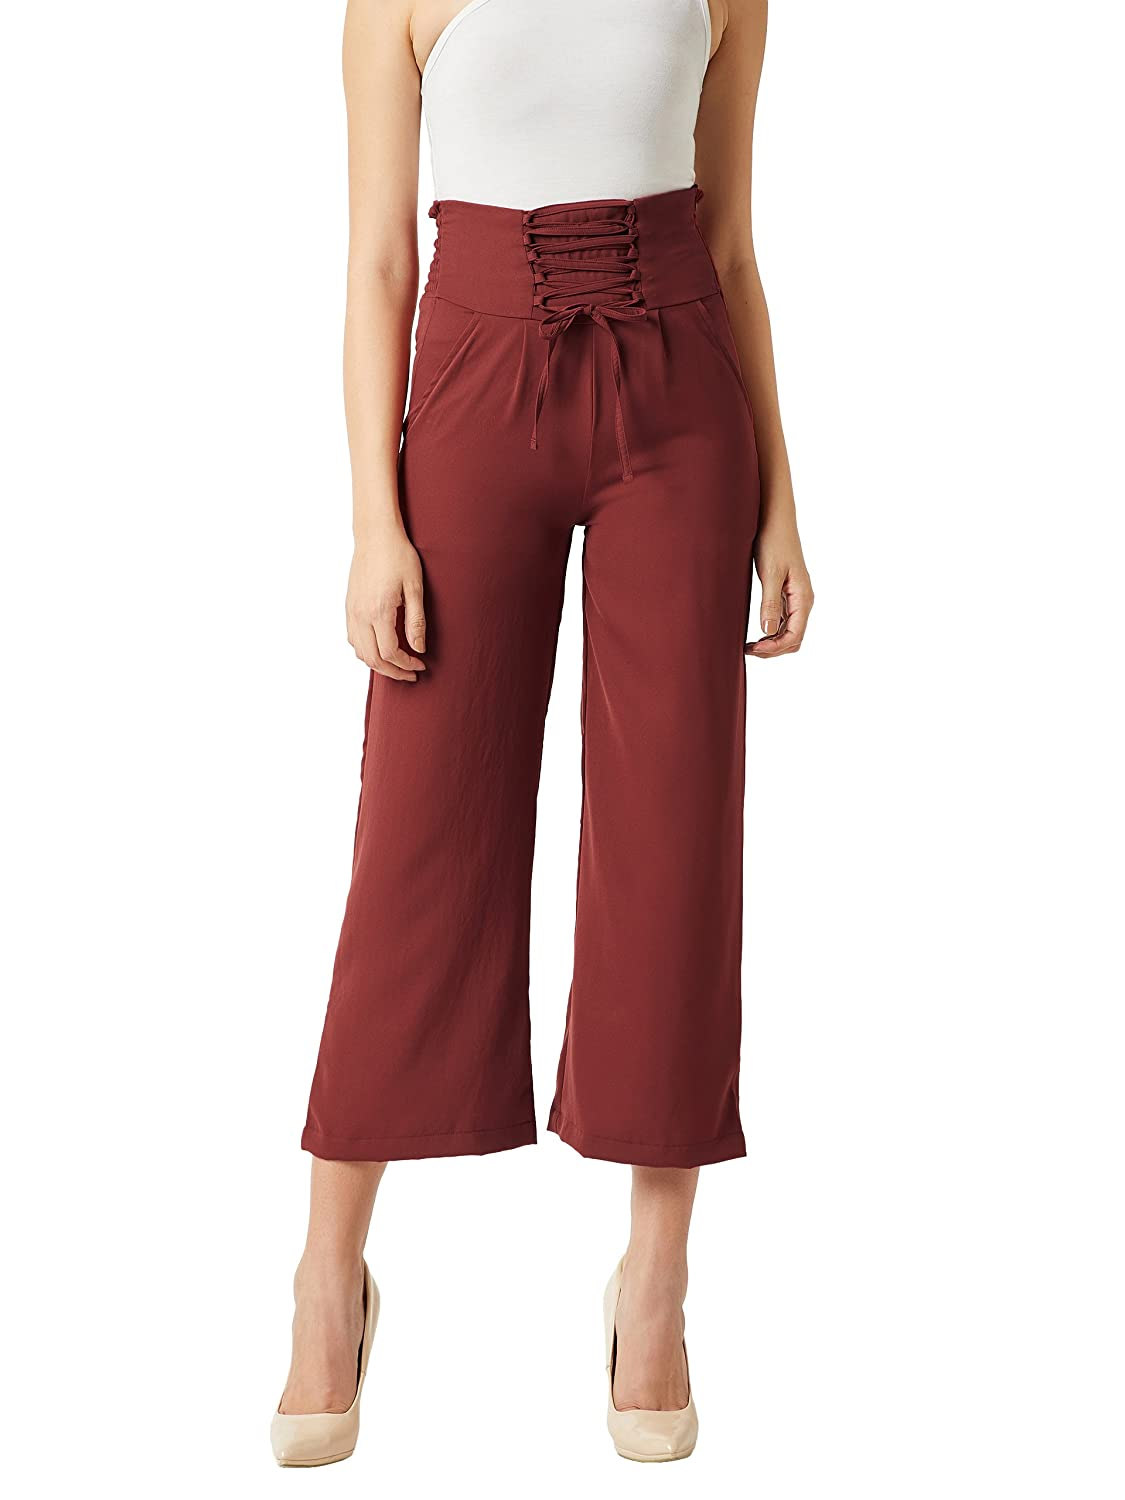 Miss Chase Women's Brick Red Criss Cross Tie-Up Pants